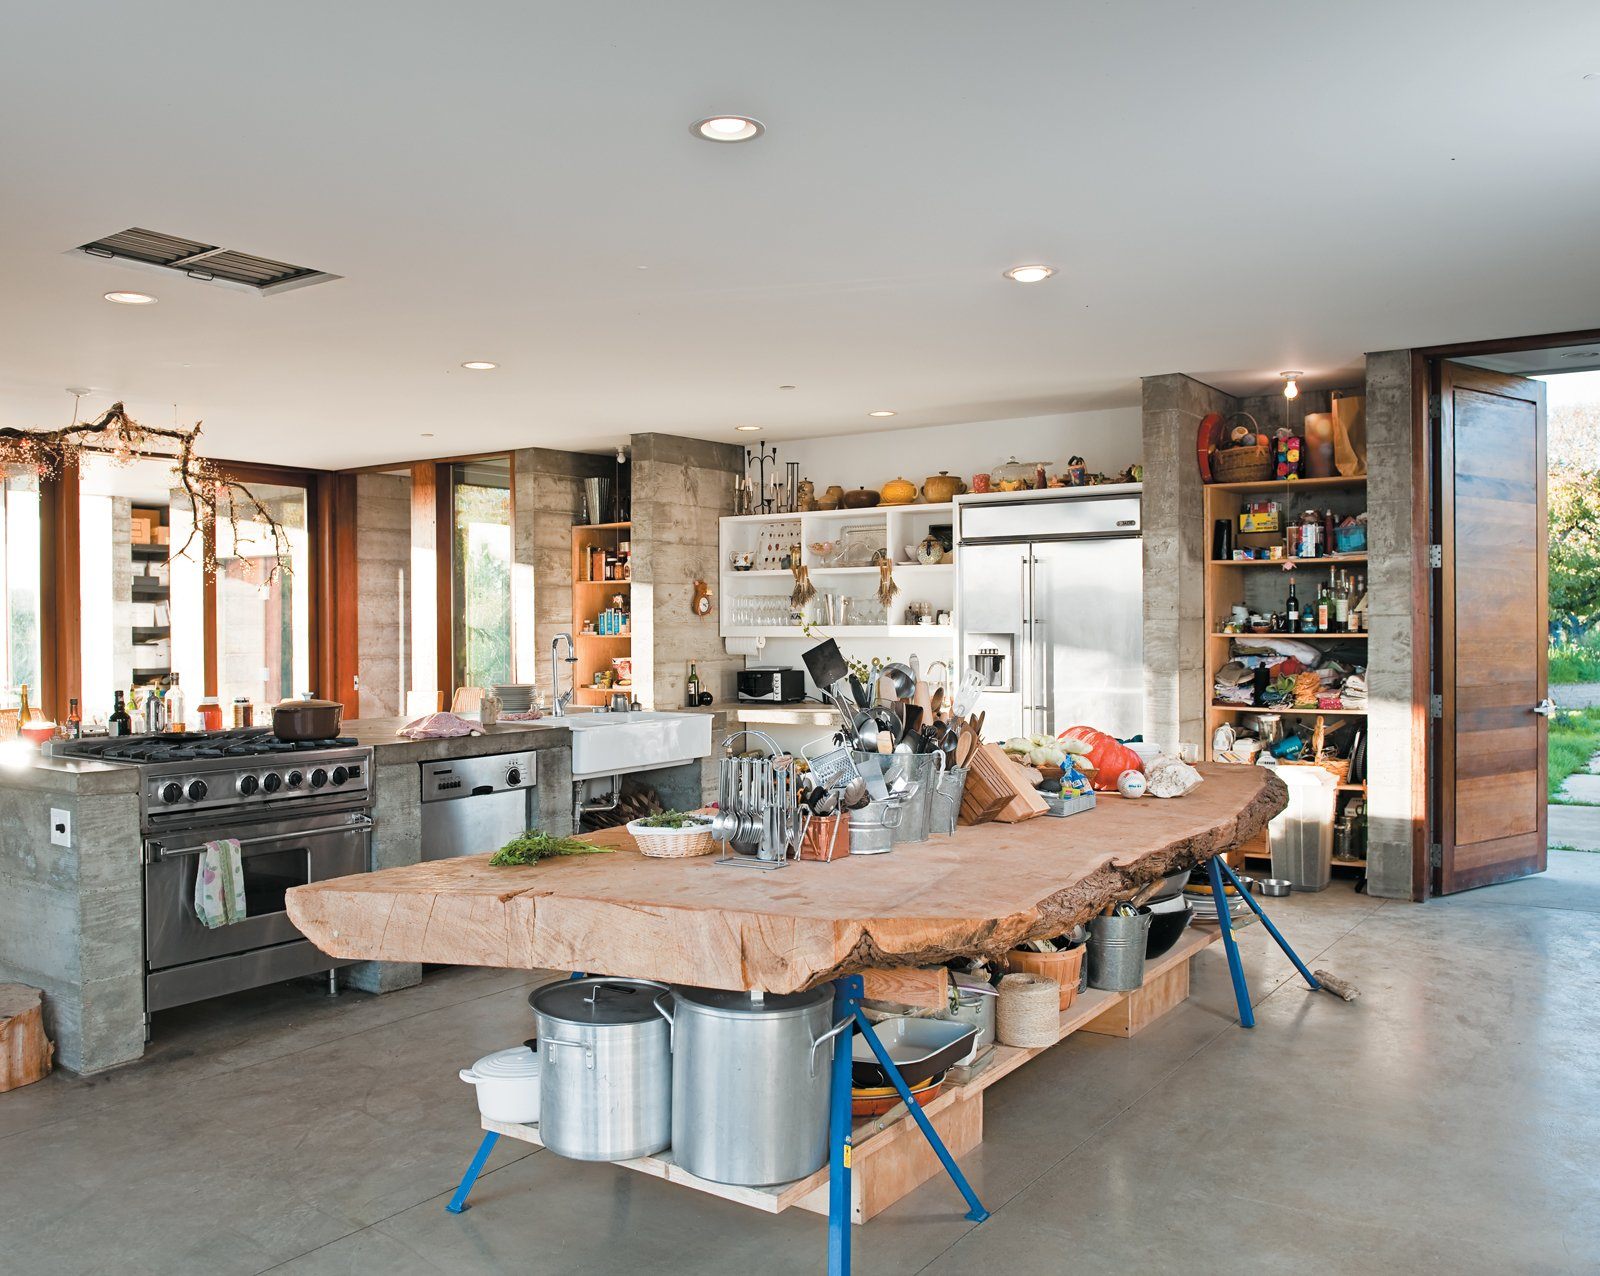 Kitchen and Wood Counter A massive slab of cypress perched atop sawhorses provides storage for pots and utensils.  Photo 5 of 18 in A Sonoma Prefab That Celebrates a Family's Passion for Cooking